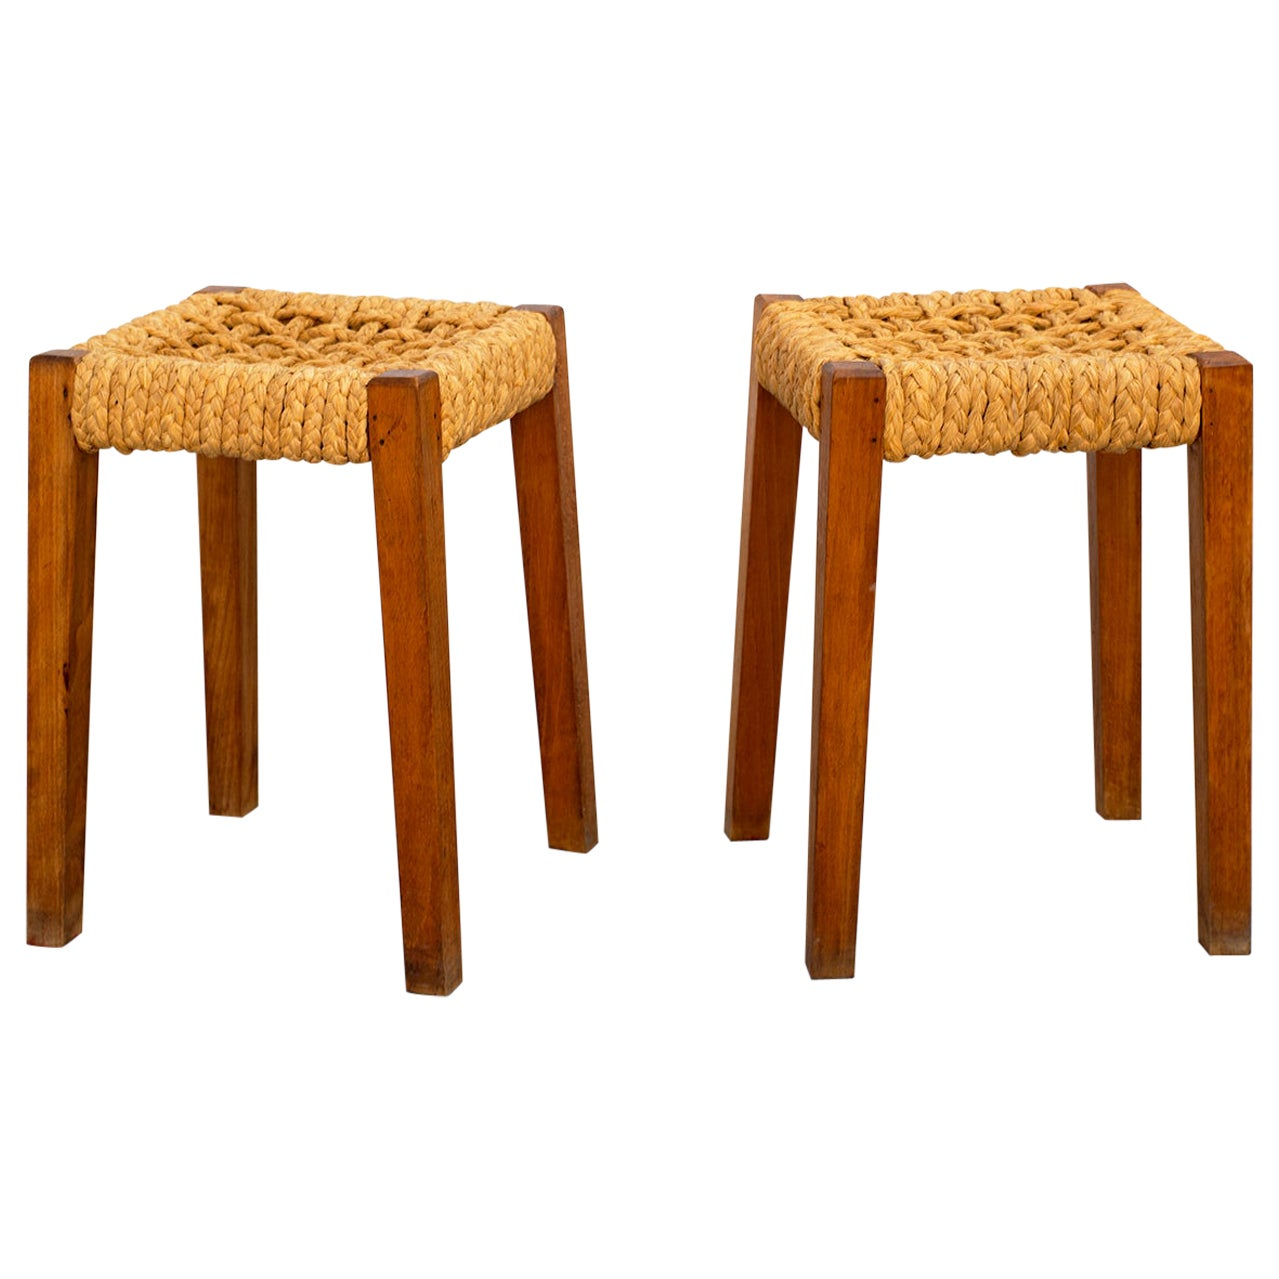 Pair of Stools by Audoux Minet